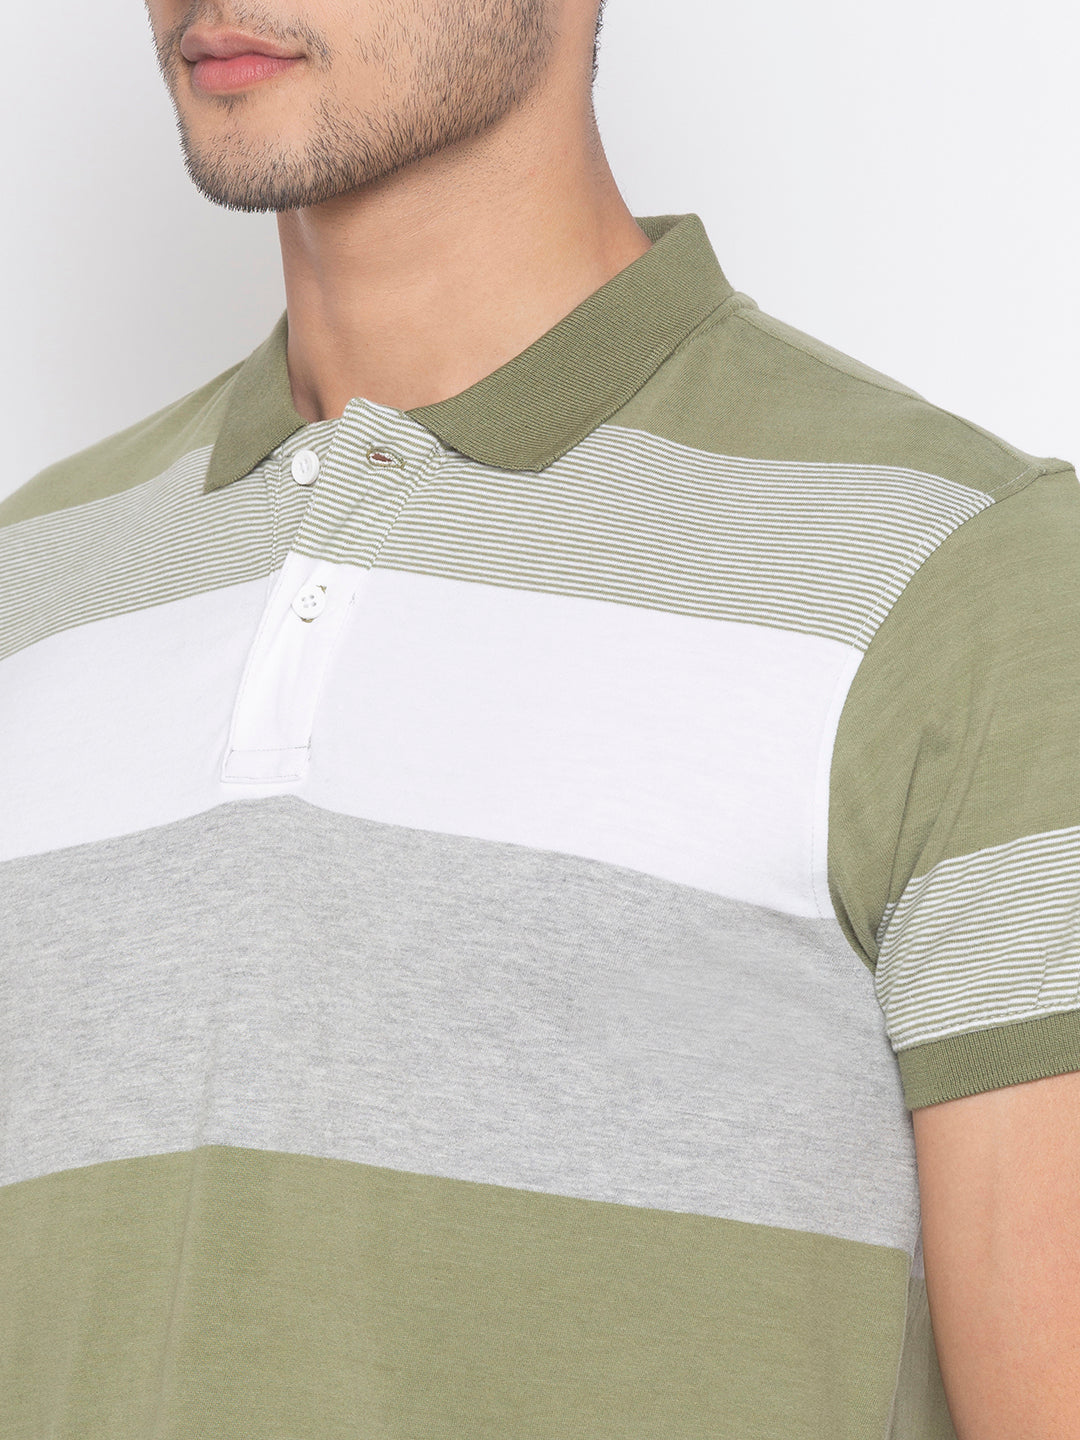 Globus Olive & White Striped T-Shirt-5